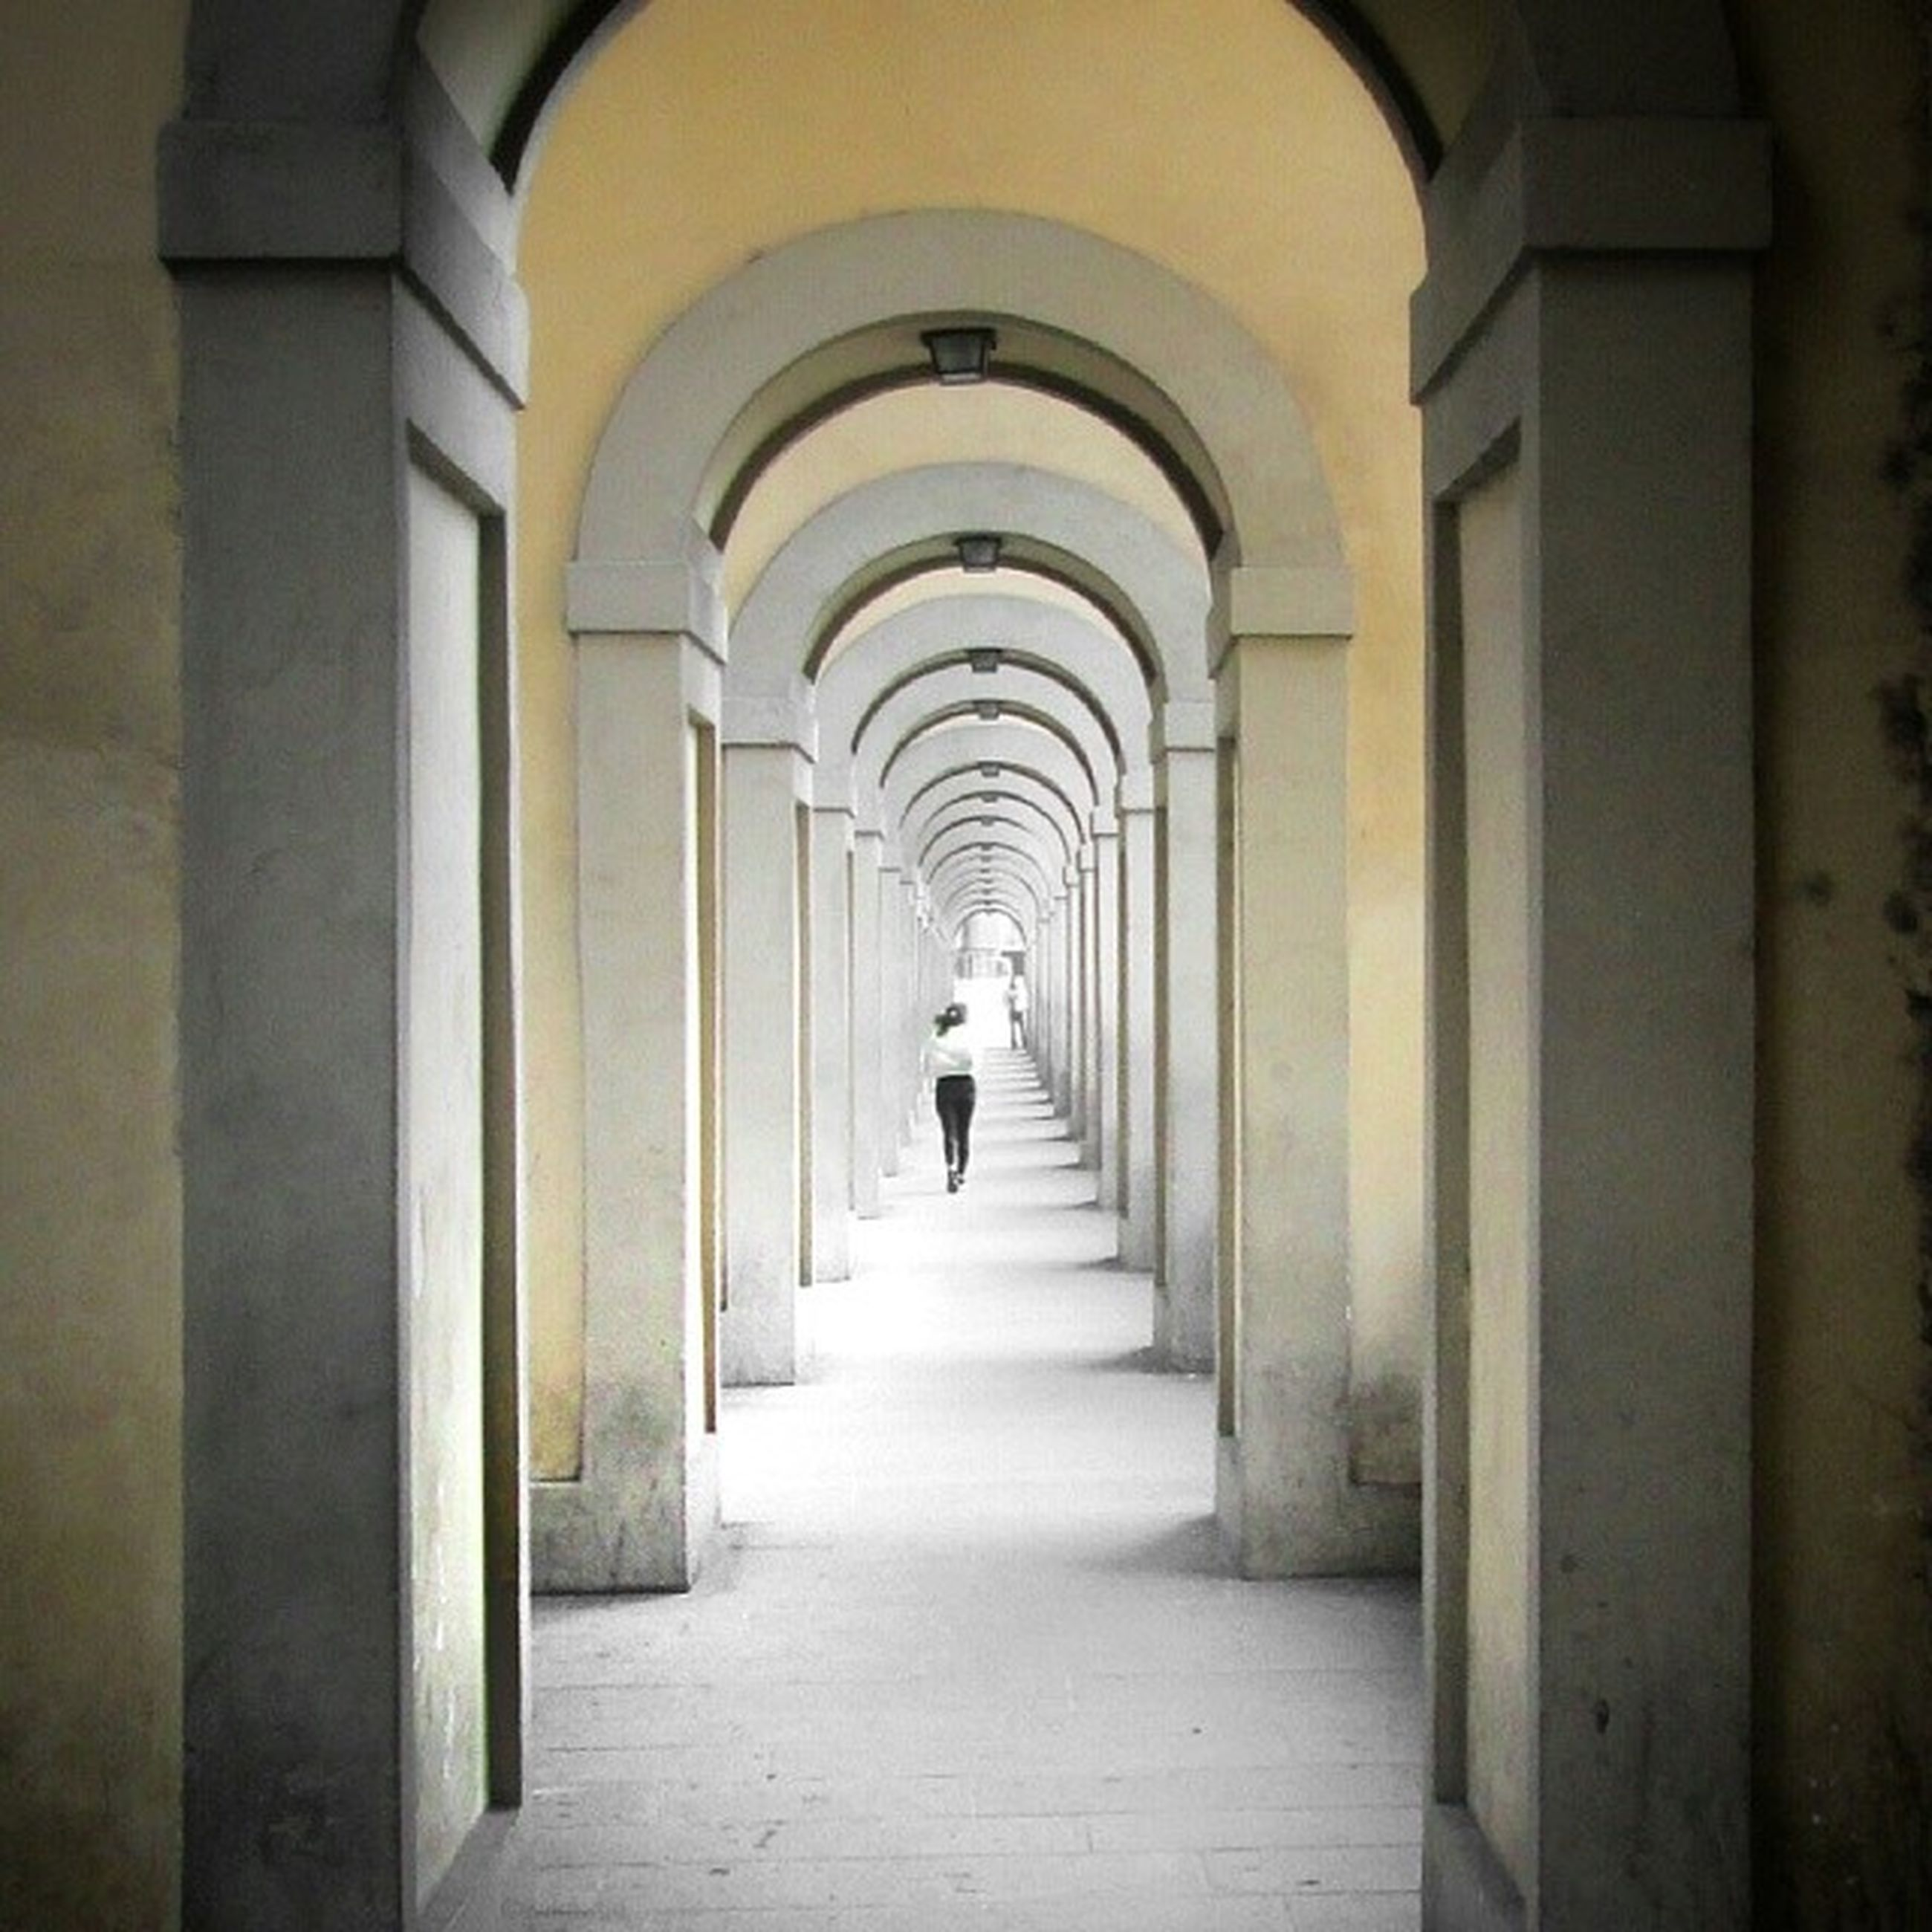 indoors, the way forward, full length, arch, walking, rear view, corridor, architecture, lifestyles, men, built structure, tunnel, person, diminishing perspective, leisure activity, archway, architectural column, vanishing point